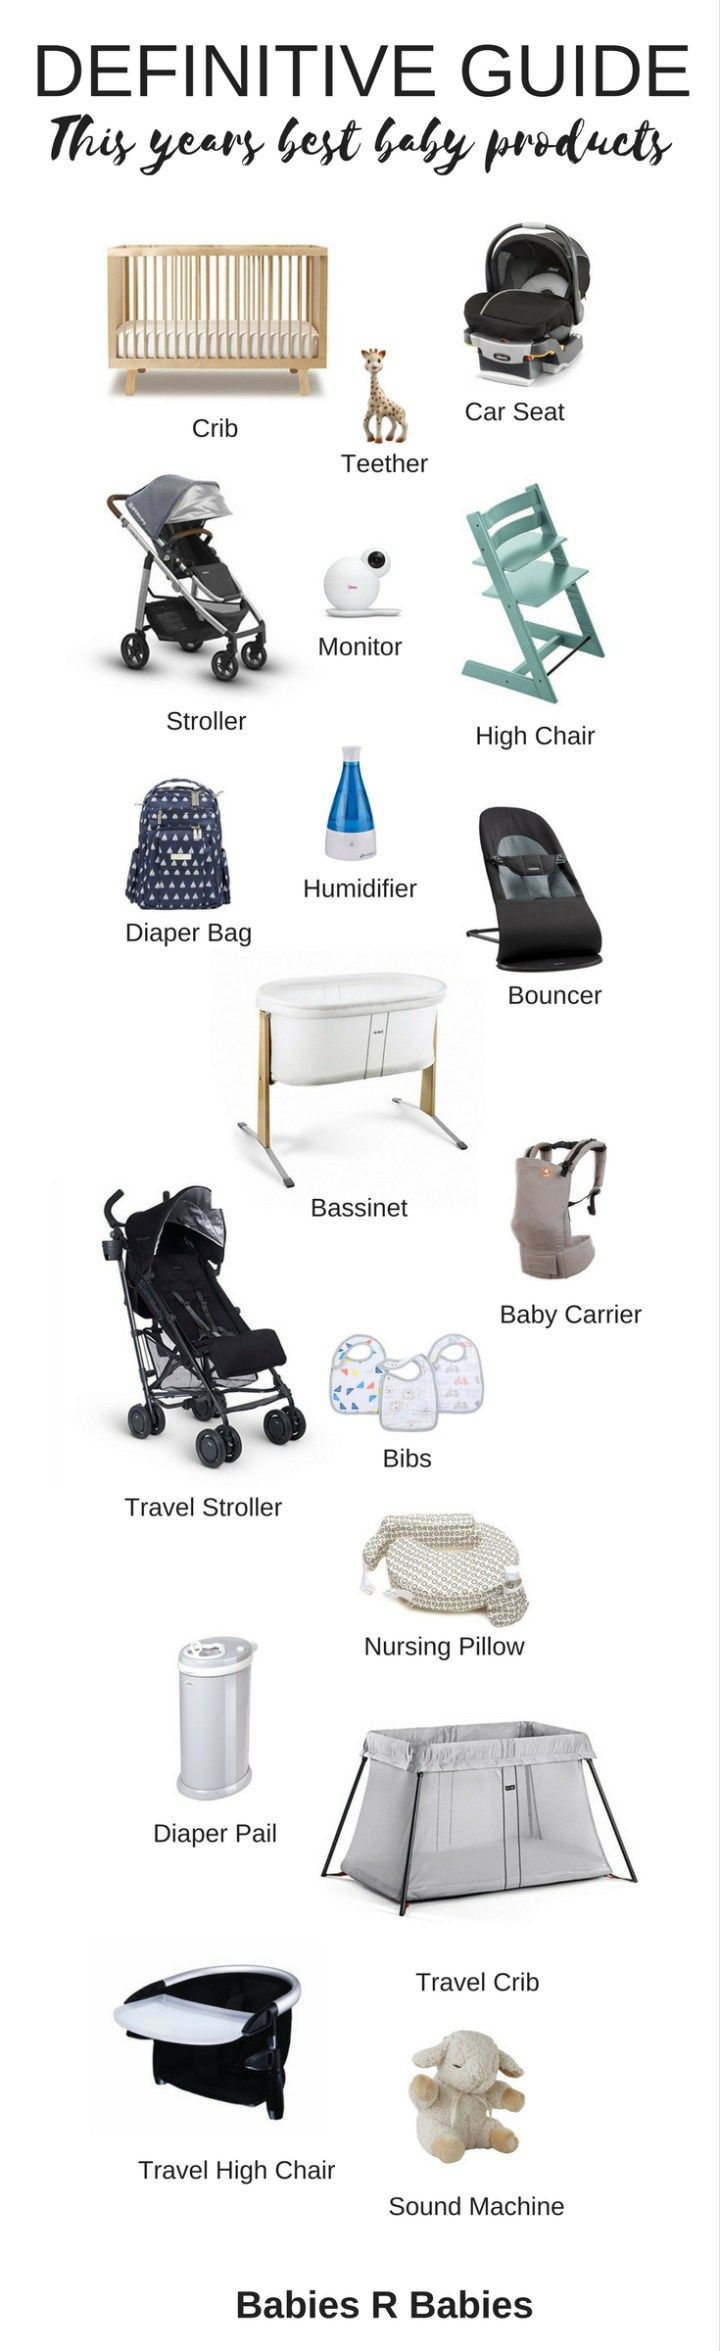 Here's my roundup of this years best baby products.